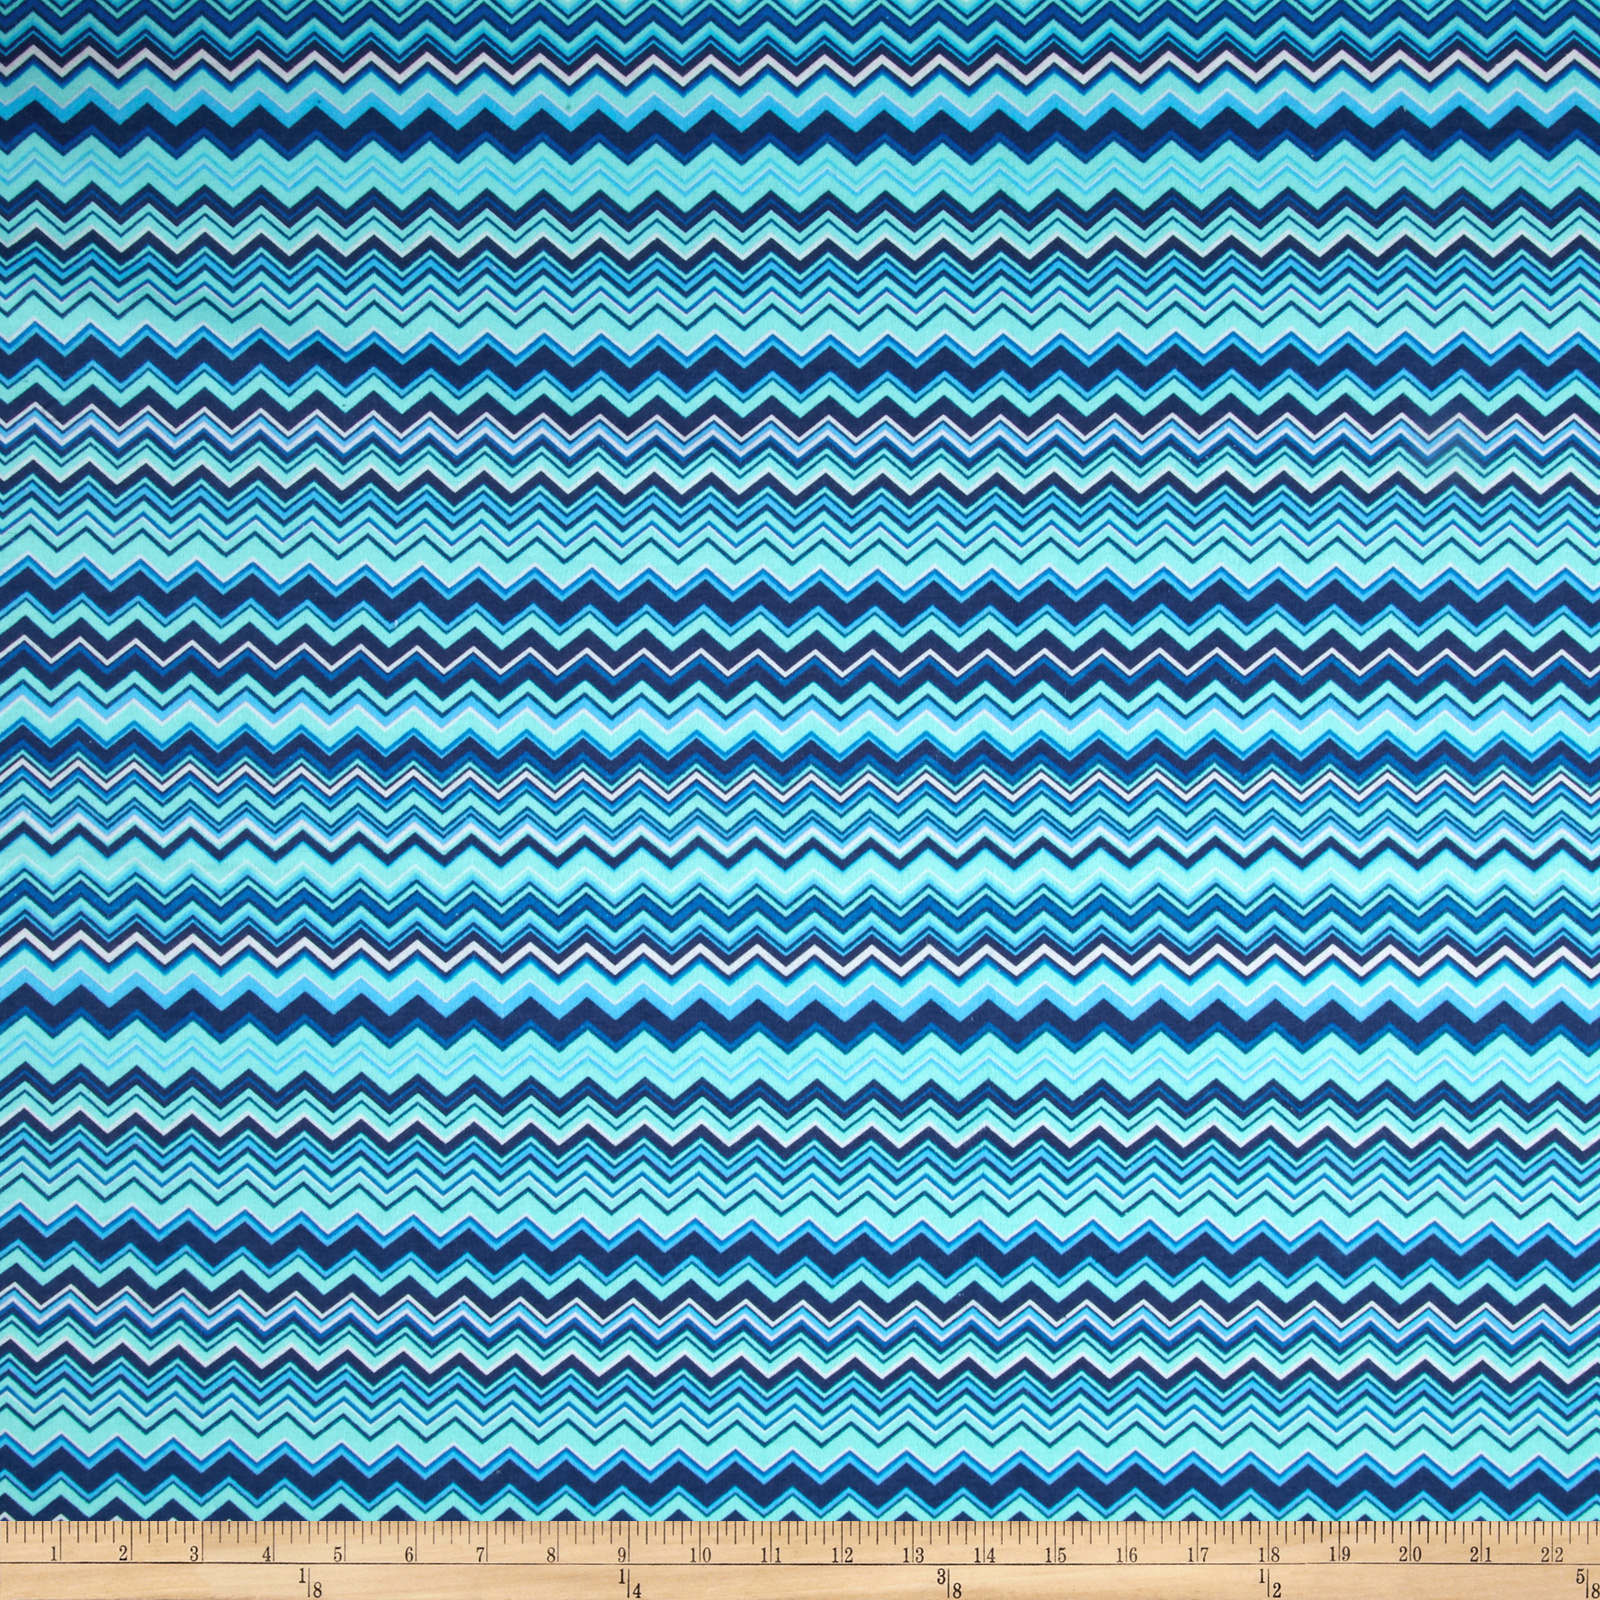 Chevron Flannel Aqua/Royal Fabric